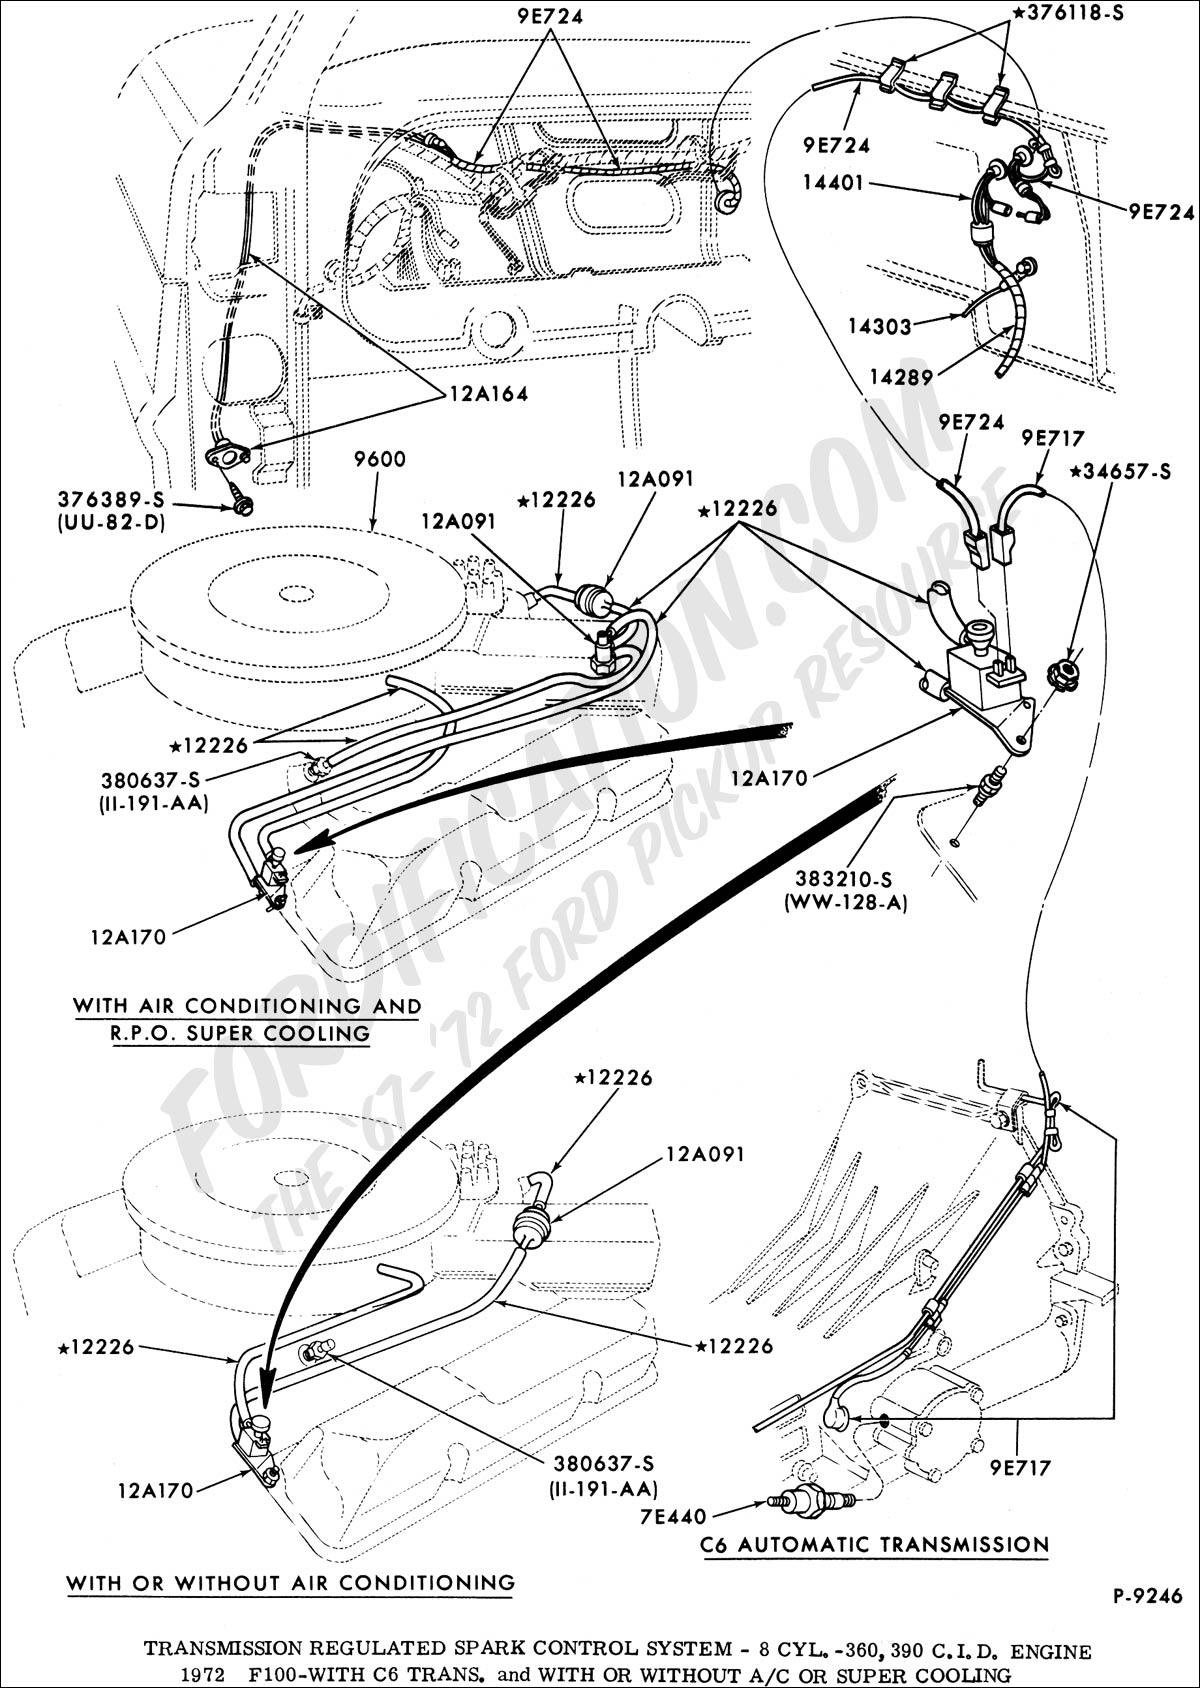 1962 Ford Falcon Engine Diagram Get Free Image About